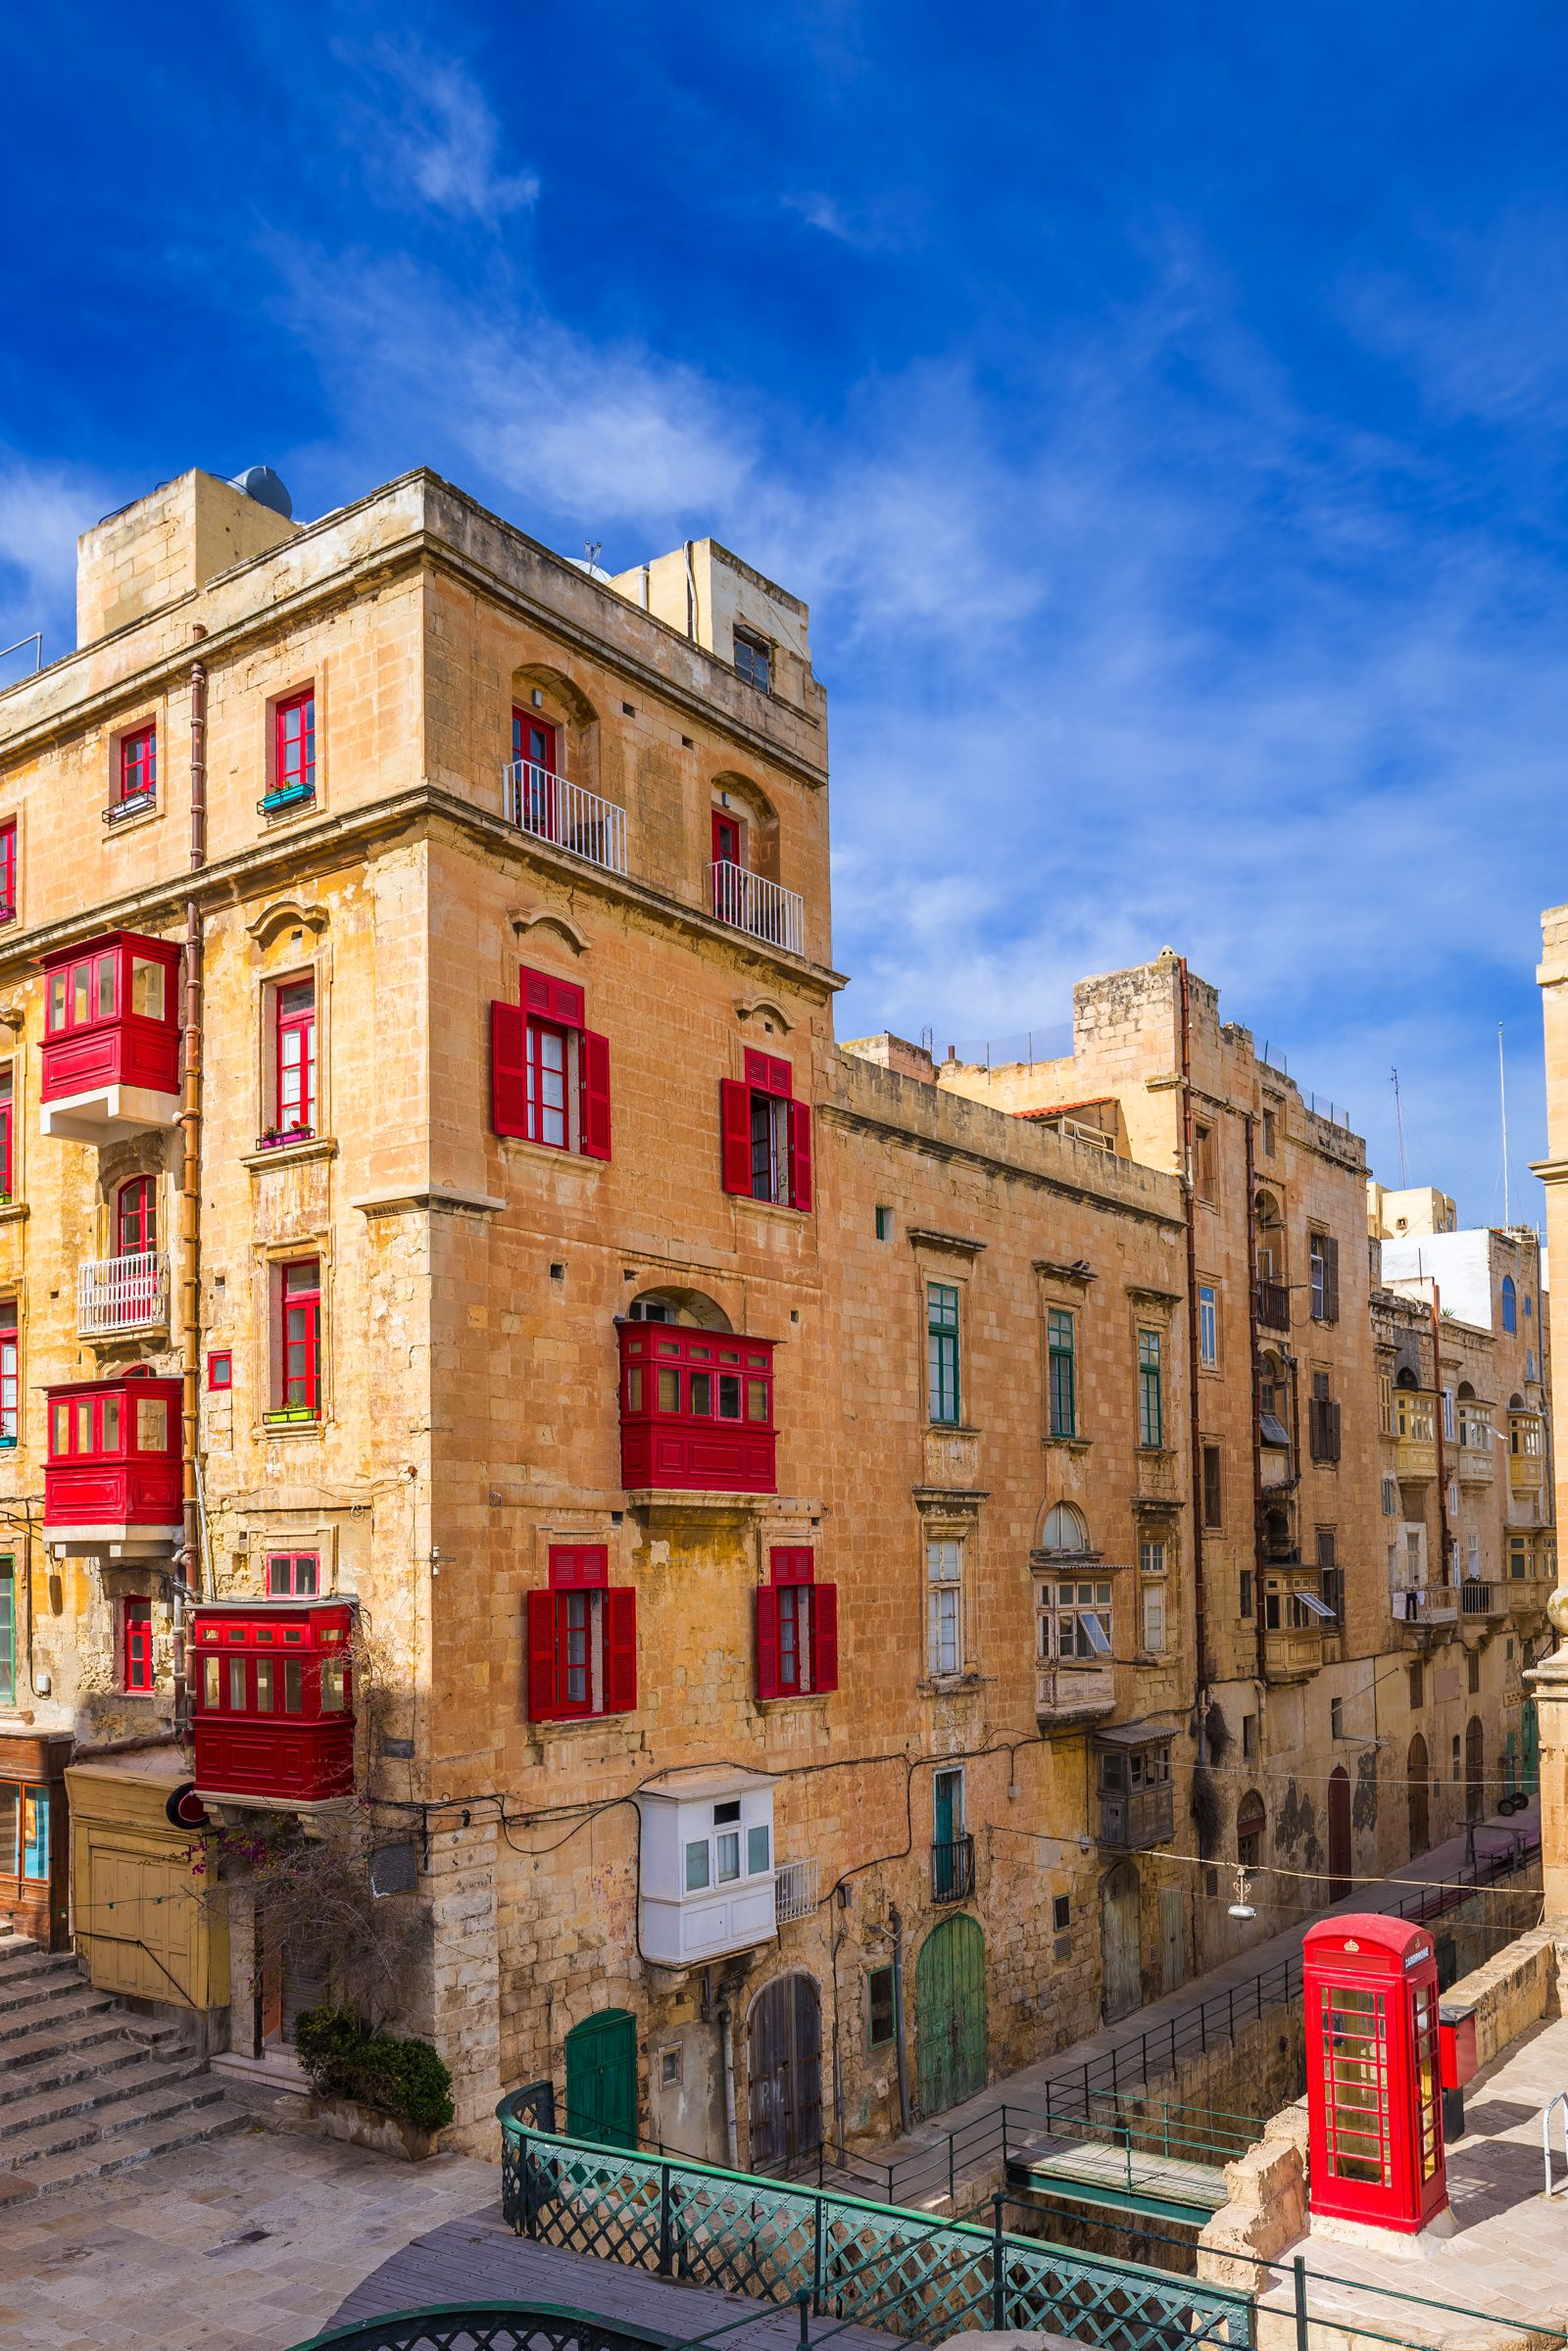 18 Incredible Things You Have To See And Do In Malta And Gozo (13)